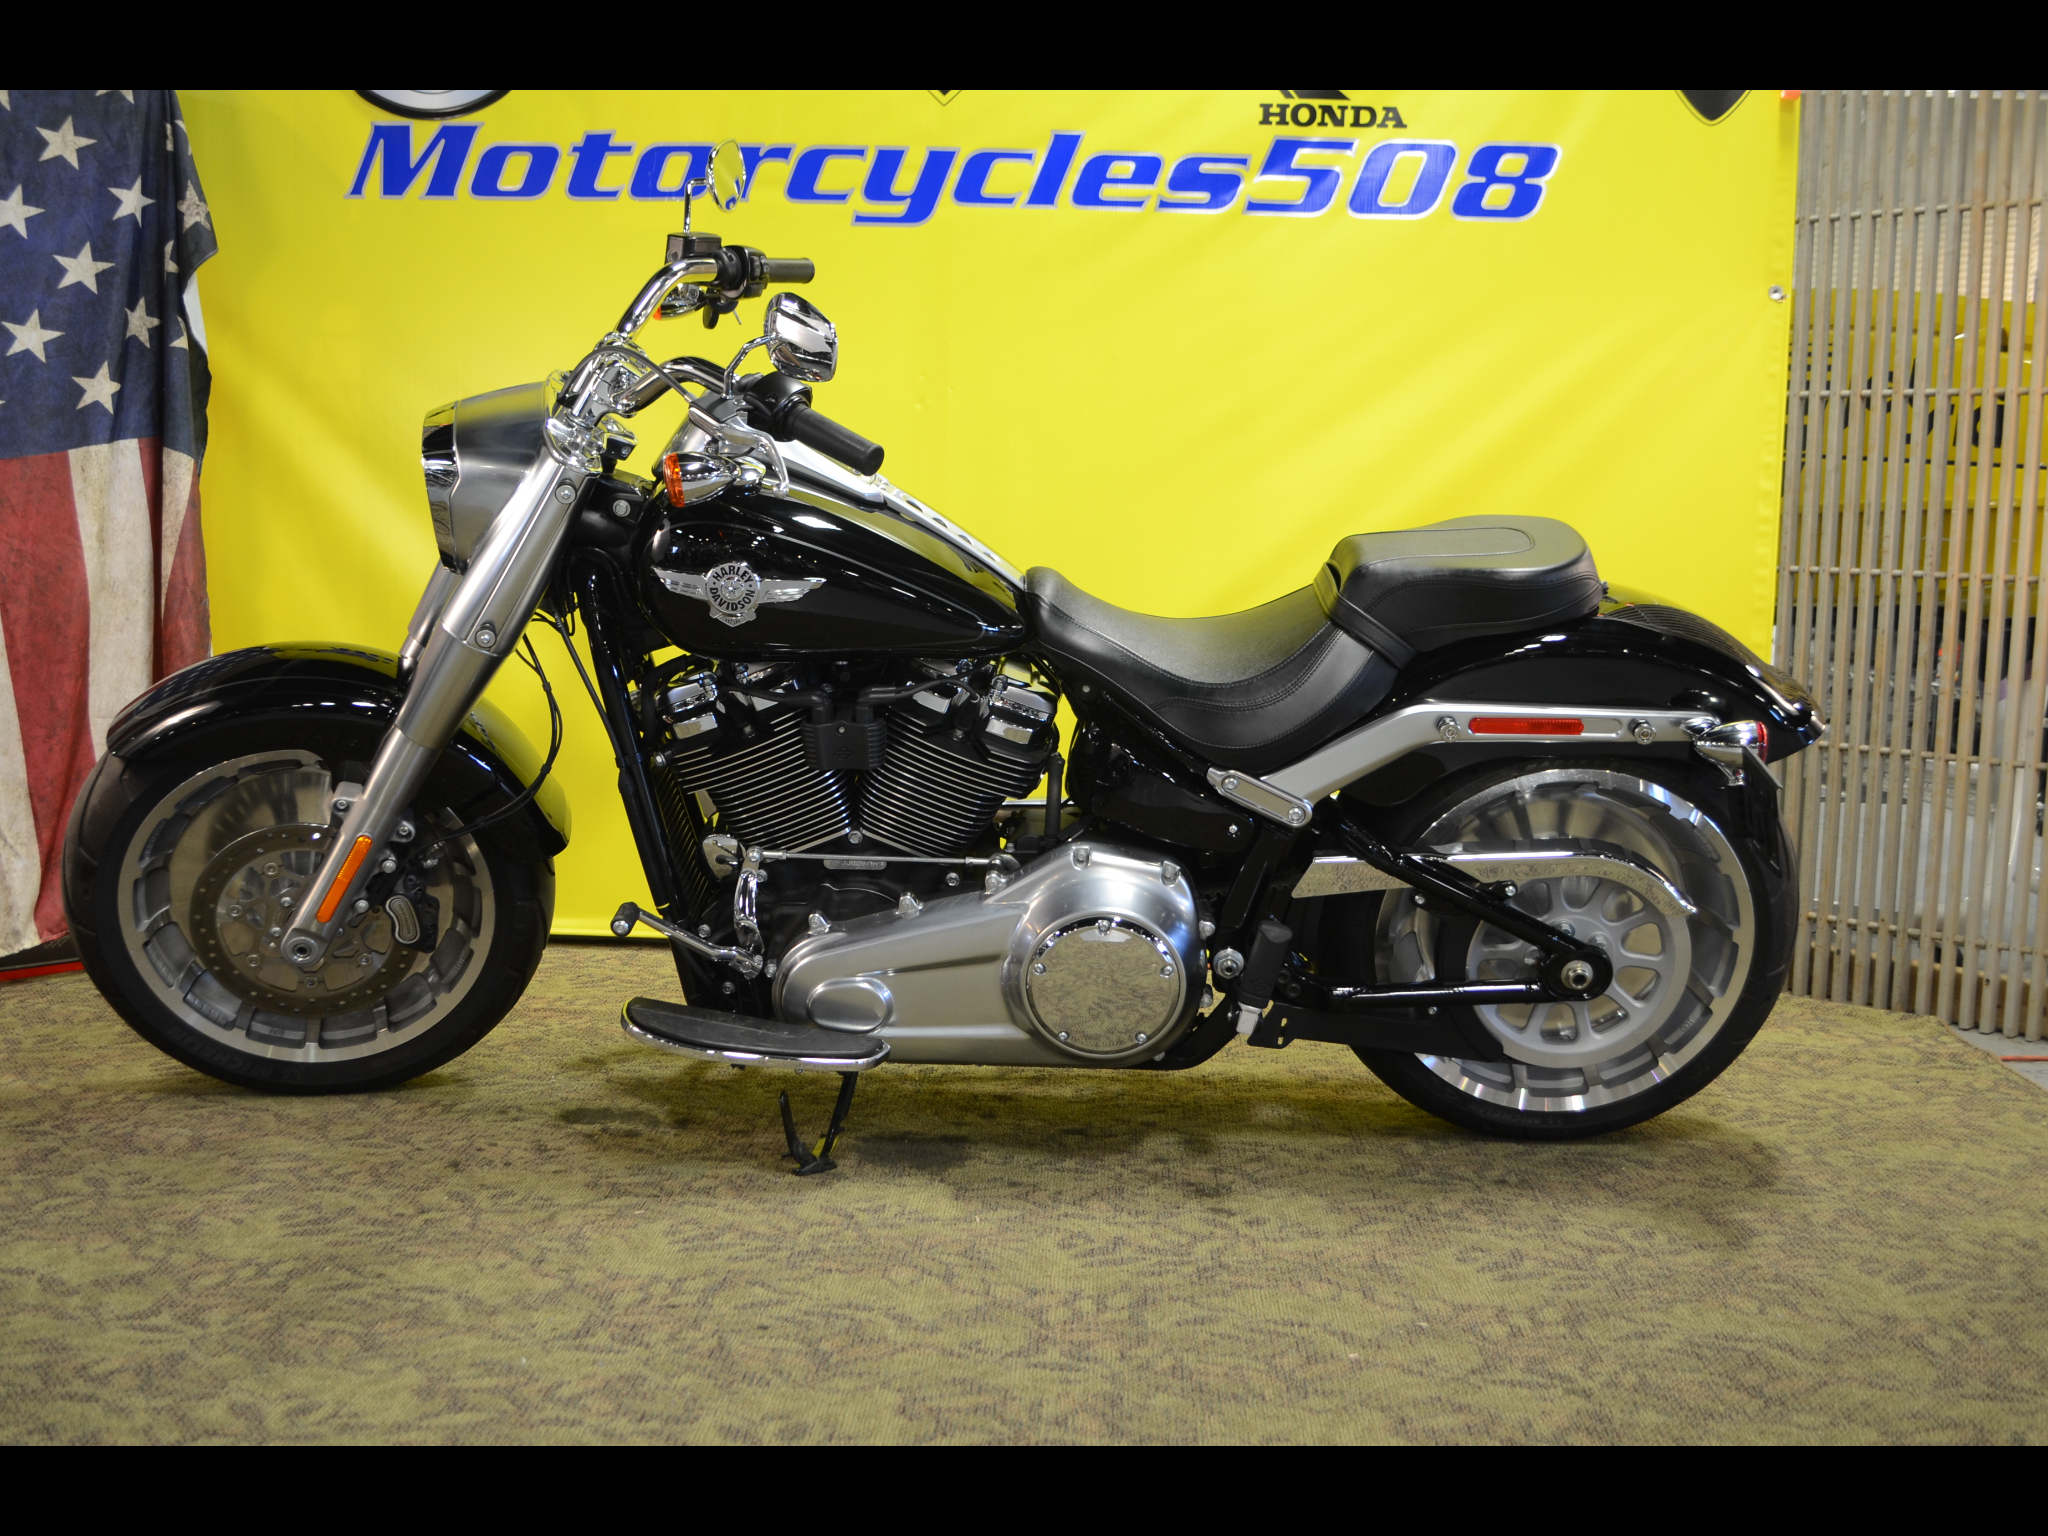 2018 Harley-Davidson Softail Fat Boy FLFB